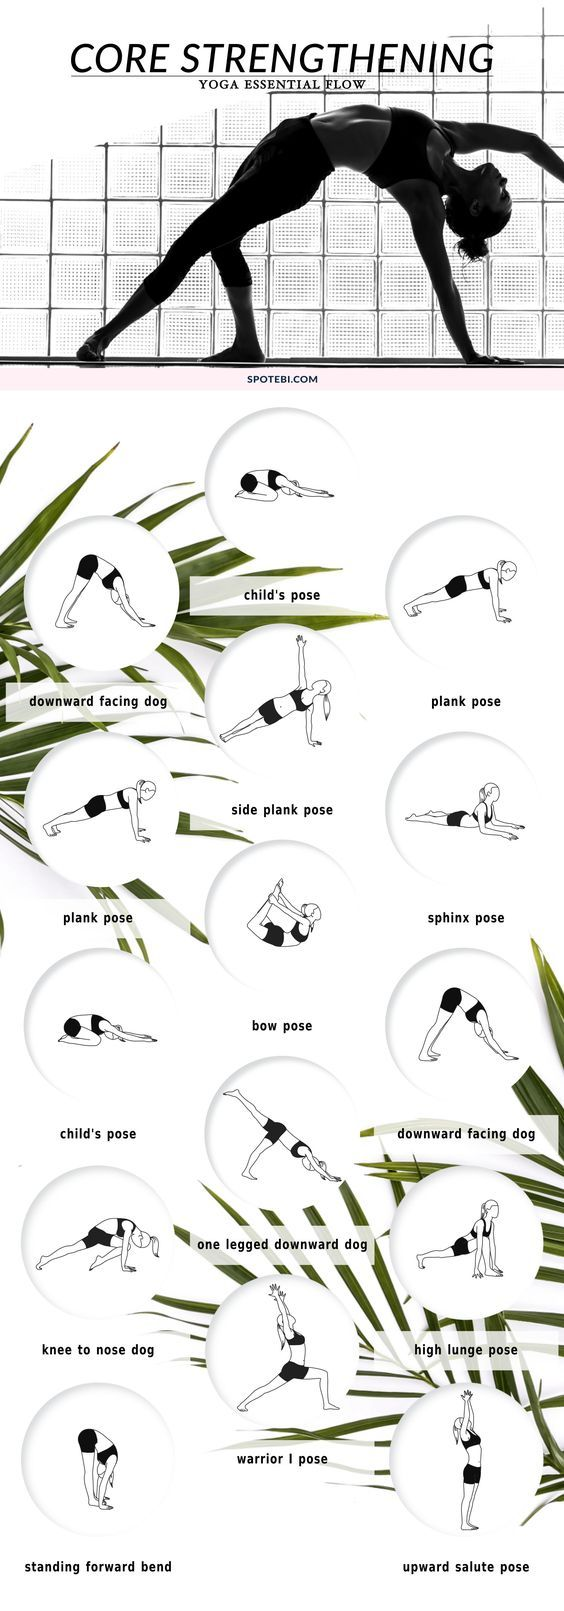 Build core strength, improve range of motion and develop long and lean muscles that will power up all your yoga flows. Focus on your breath and allow your body and mind to relax as you move through these core strengthening poses. https://www.spotebi.com/y